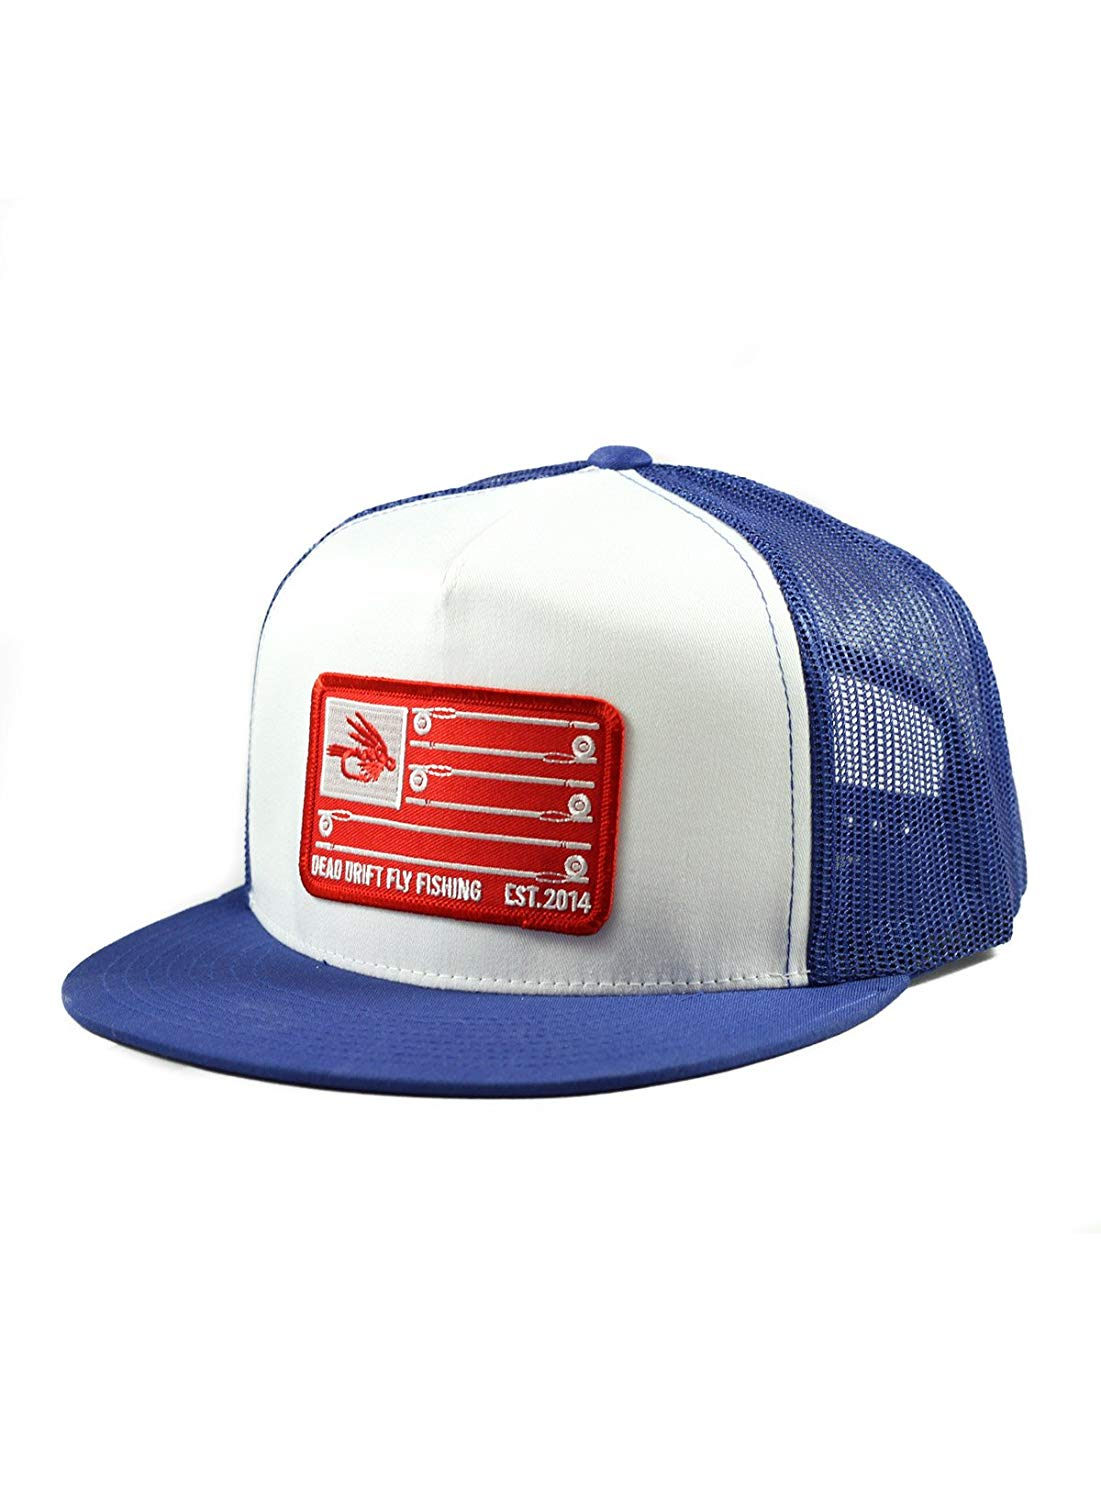 13b97e62c34a2 Get Quotations · Dead Drift Fly Fishing Hat Stars and Stripes Royal Flat  Bill Snapback Fly